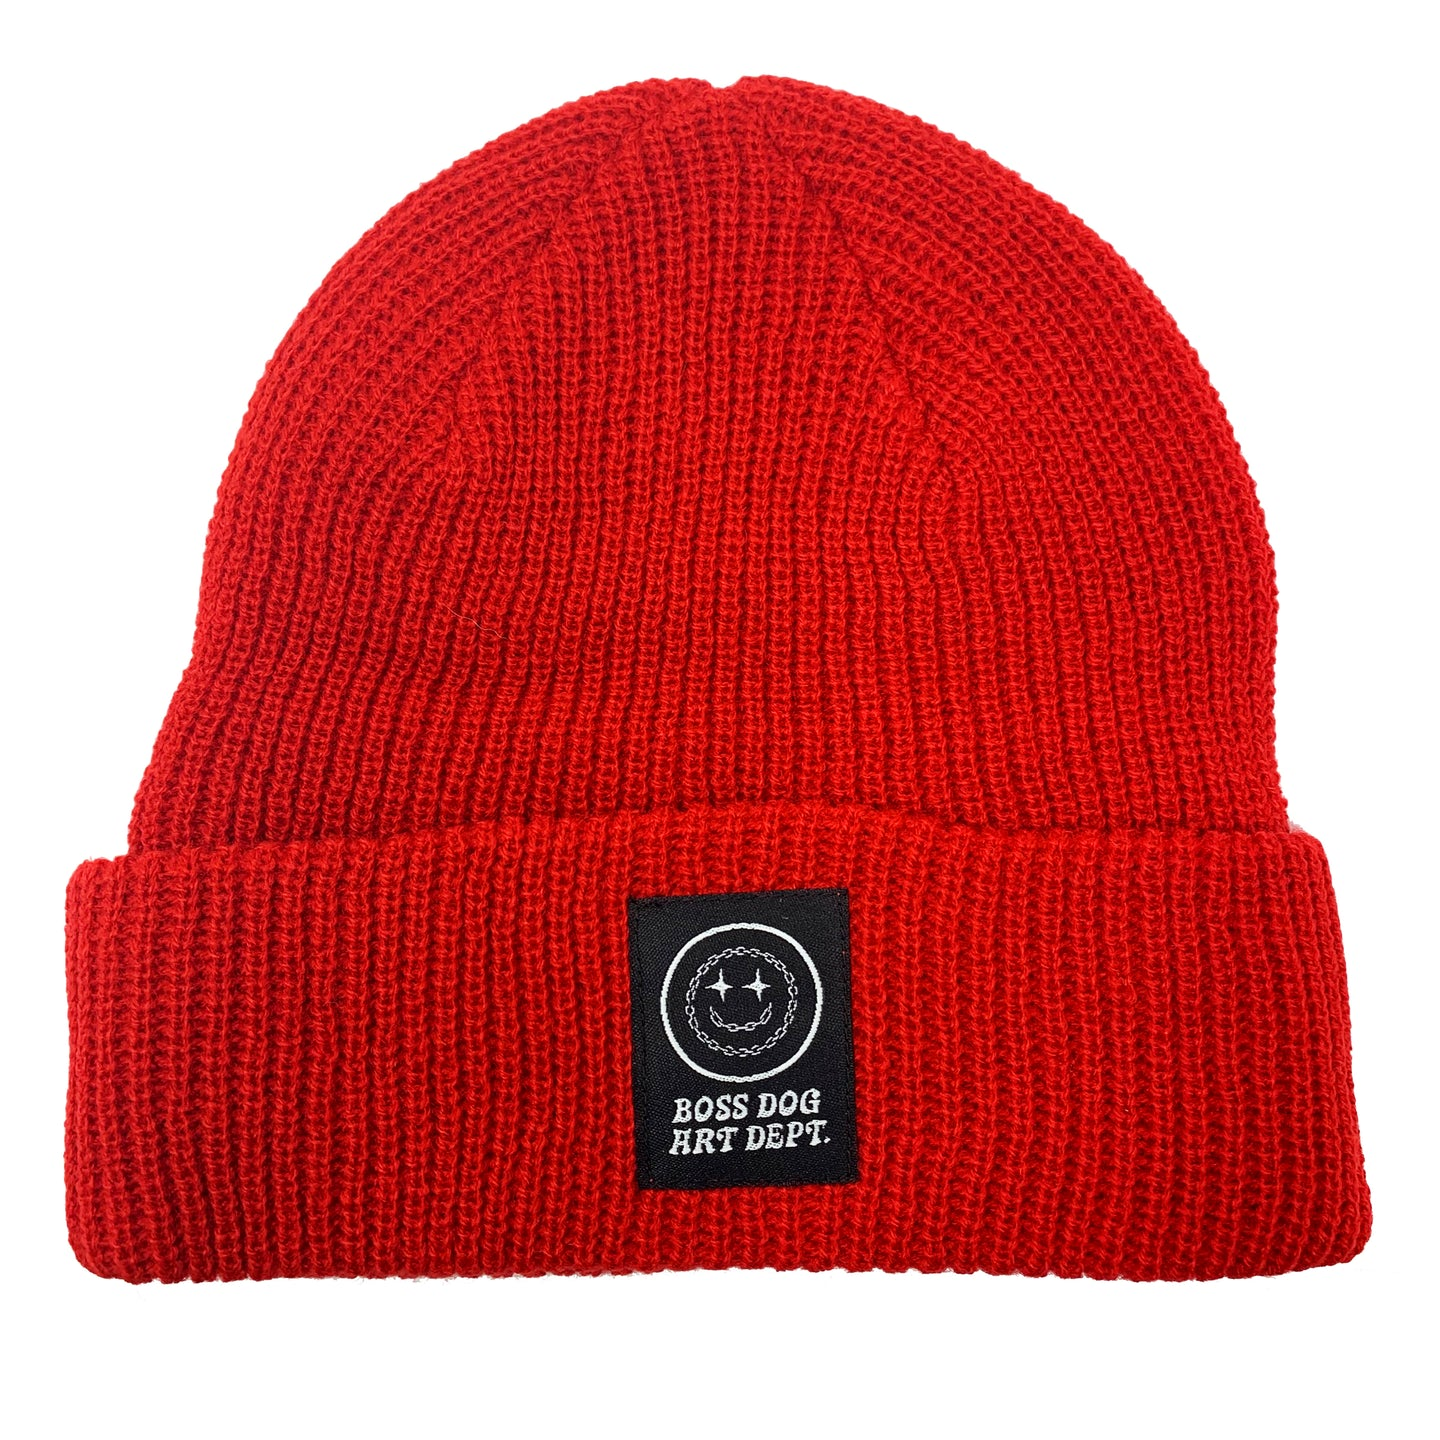 Boss Dog Art Dept. Red Beanie